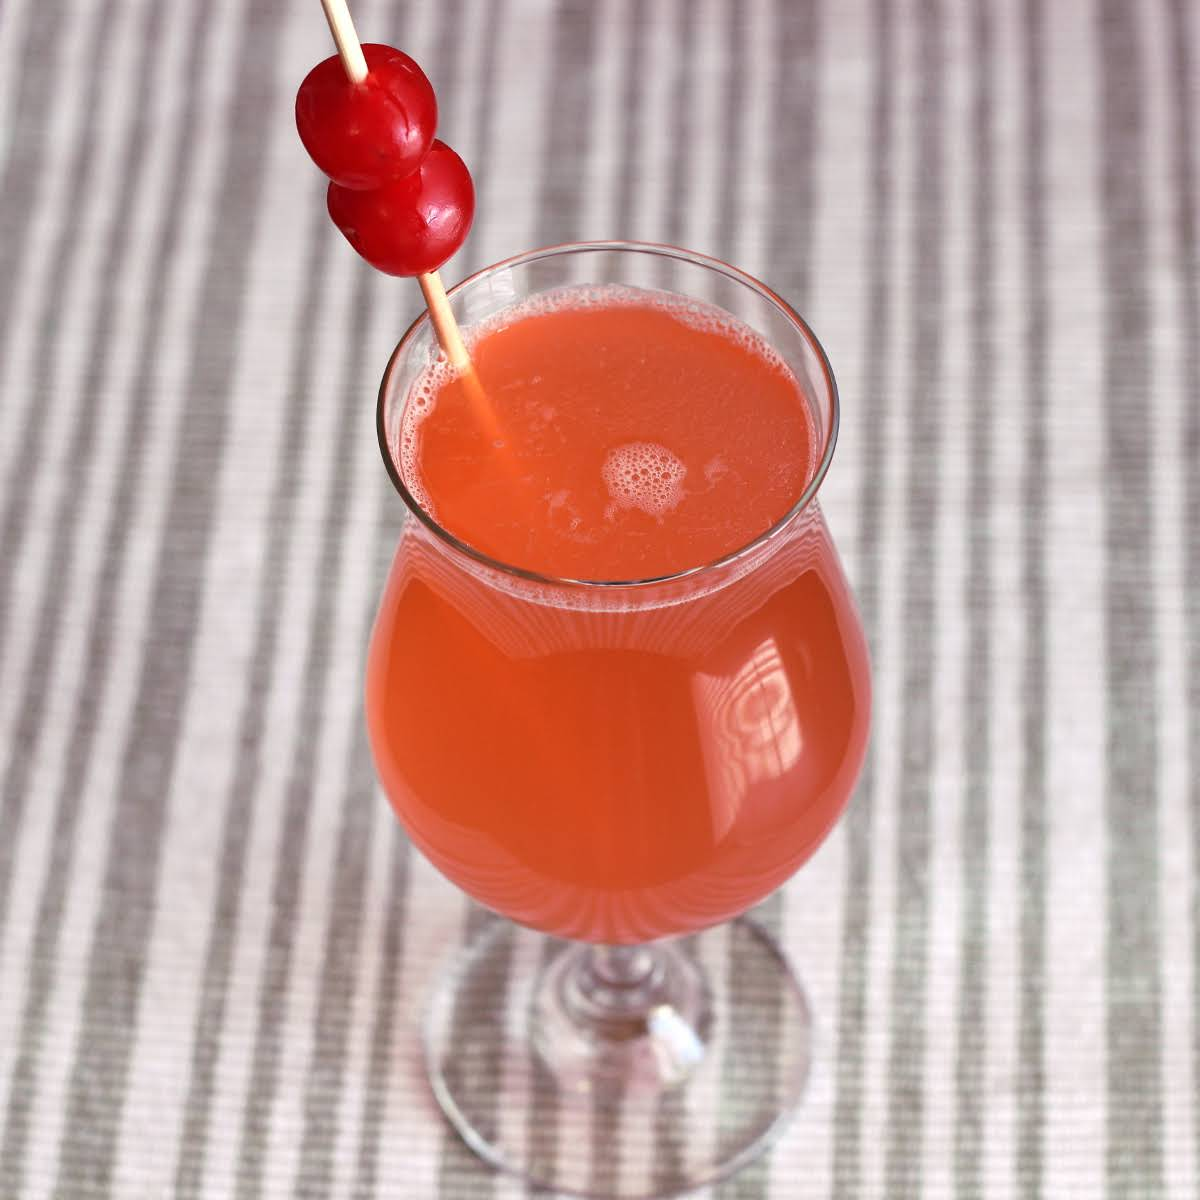 10 Best Ruby Red Vodka Drinks Recipes